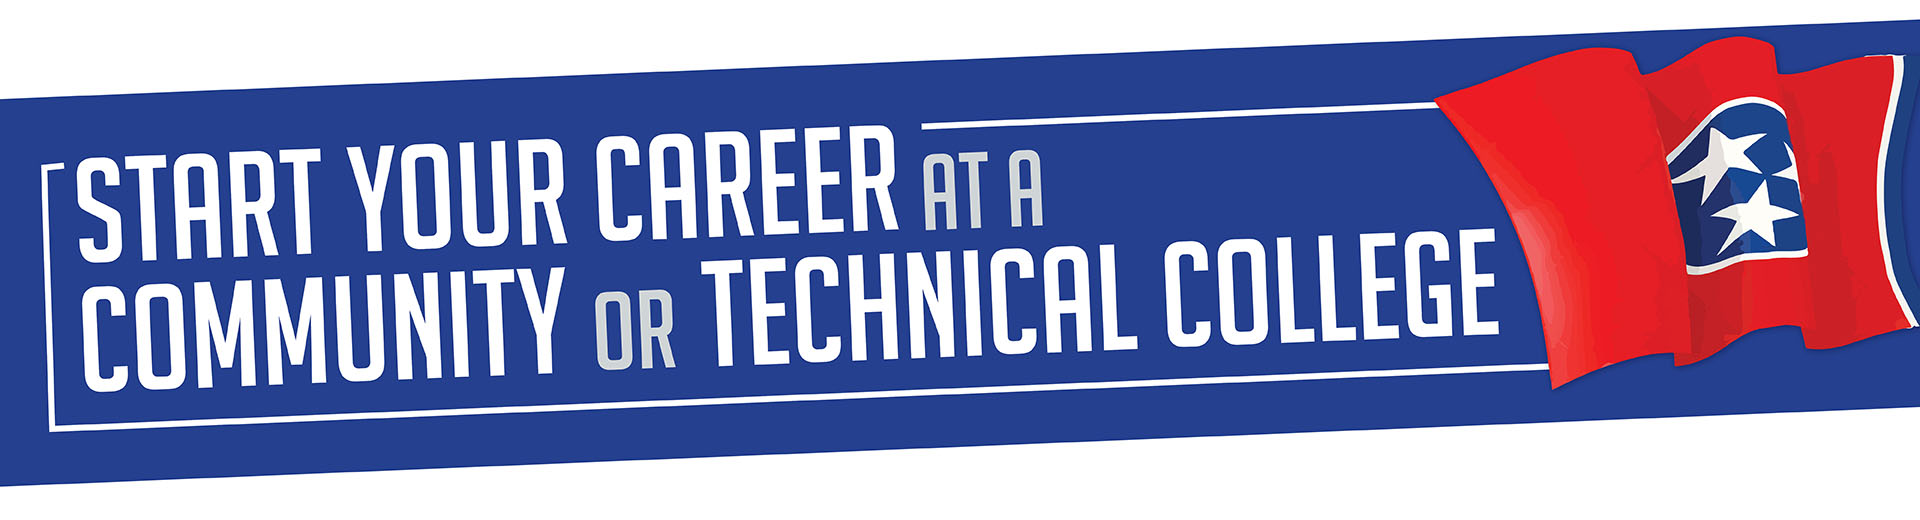 Start Your Career at a Community or Technical College